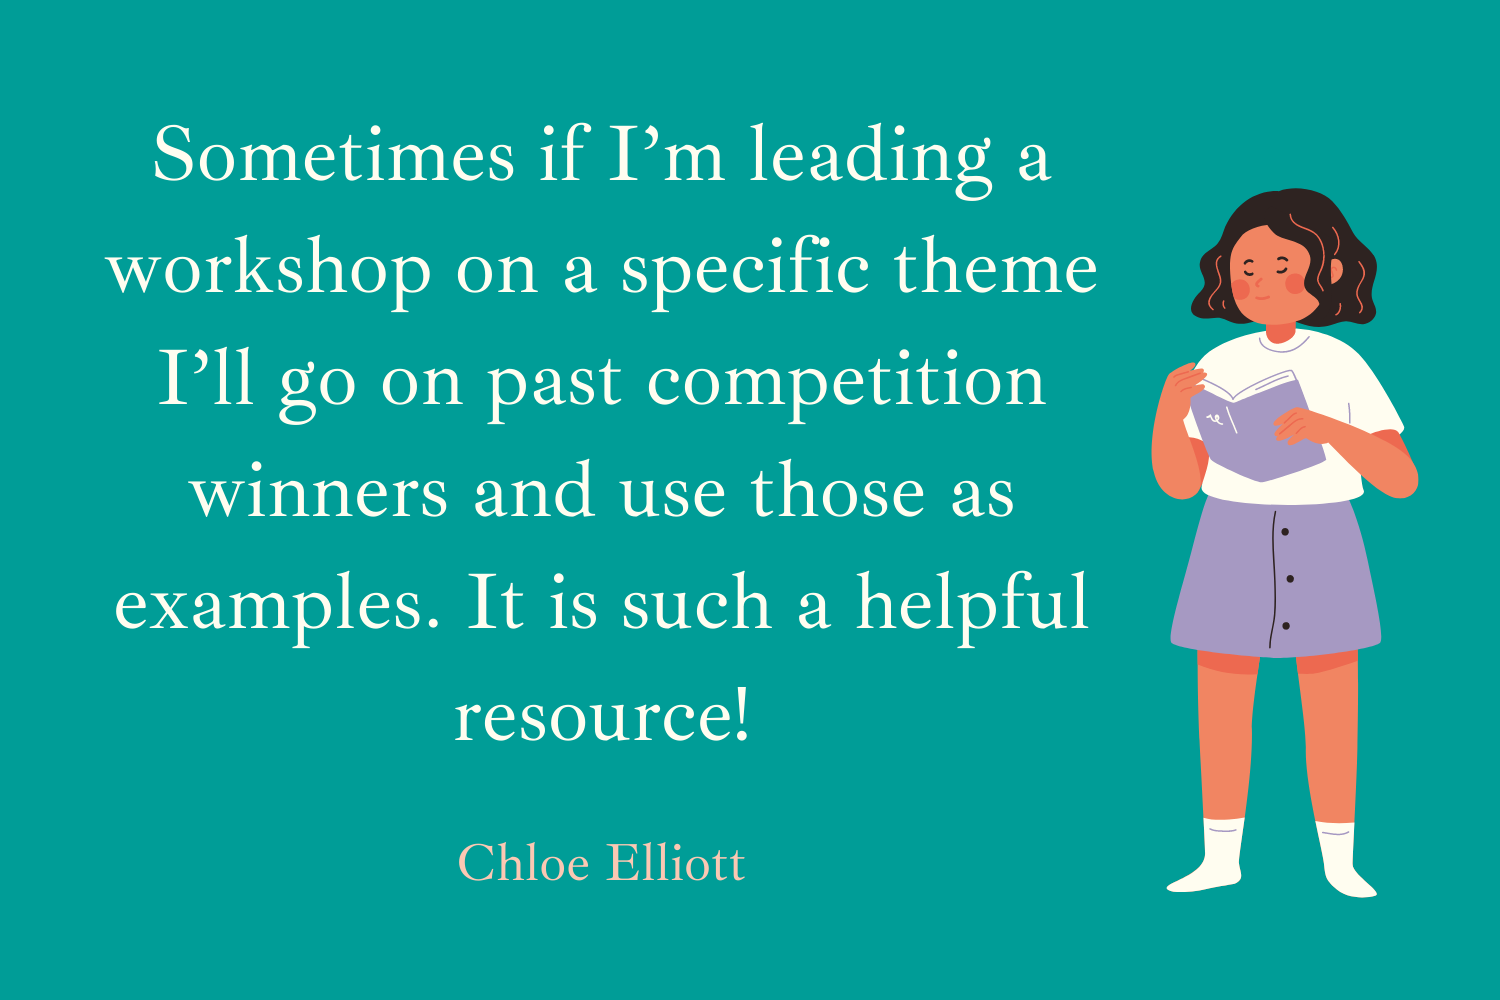 Sometimes if I'm leading a workshop on a specific theme I'll go on past competition winners and use those as examples. It is such a helpful resource! Chloe Elliott